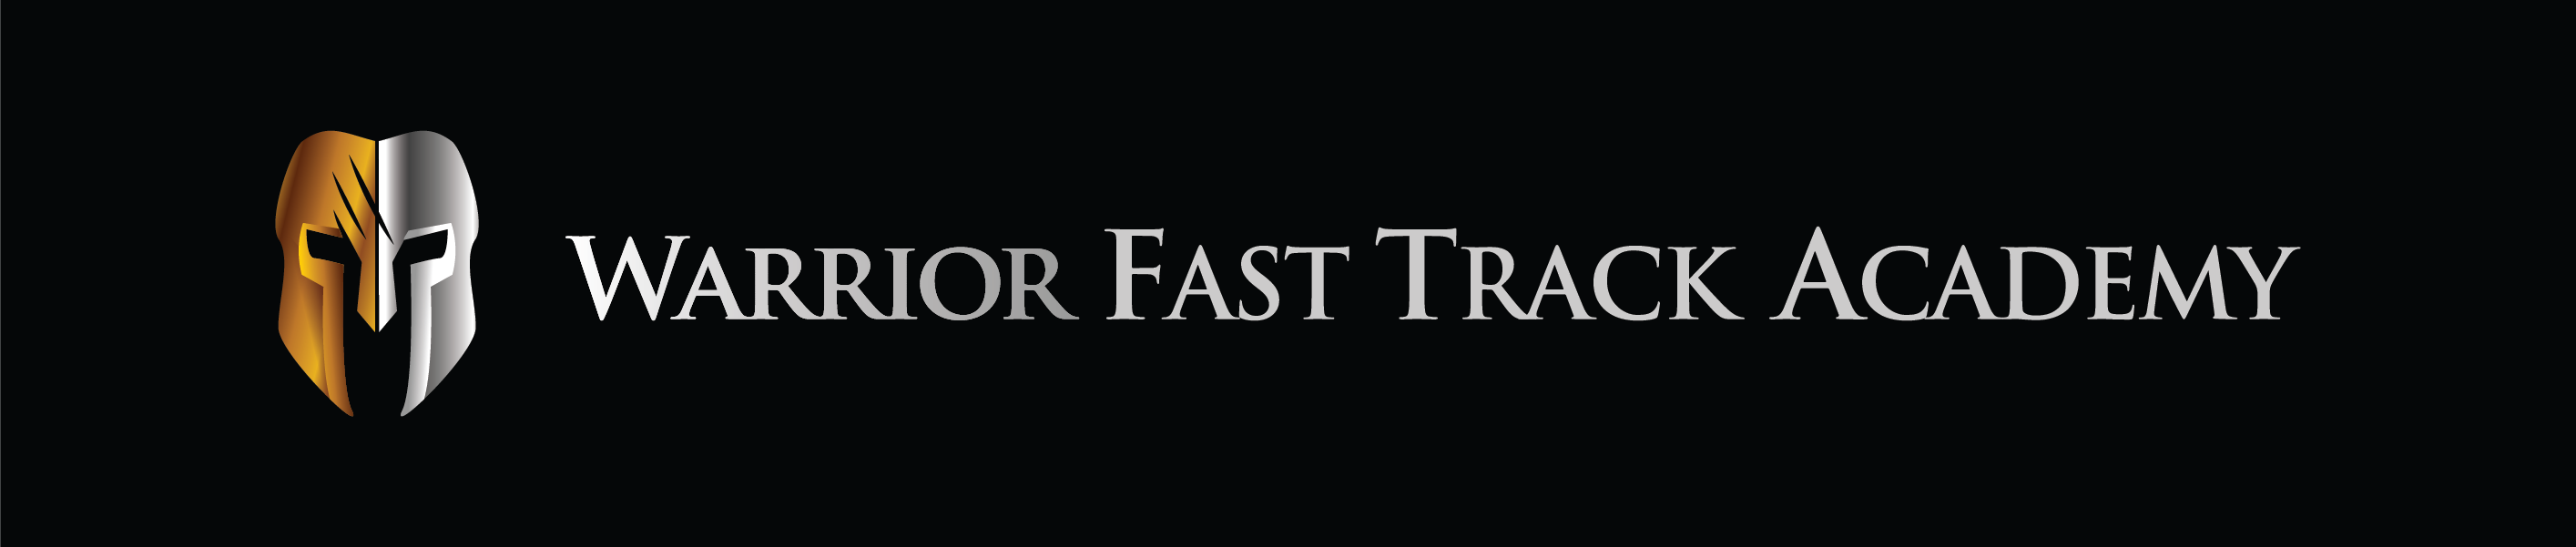 Fast_Track-10